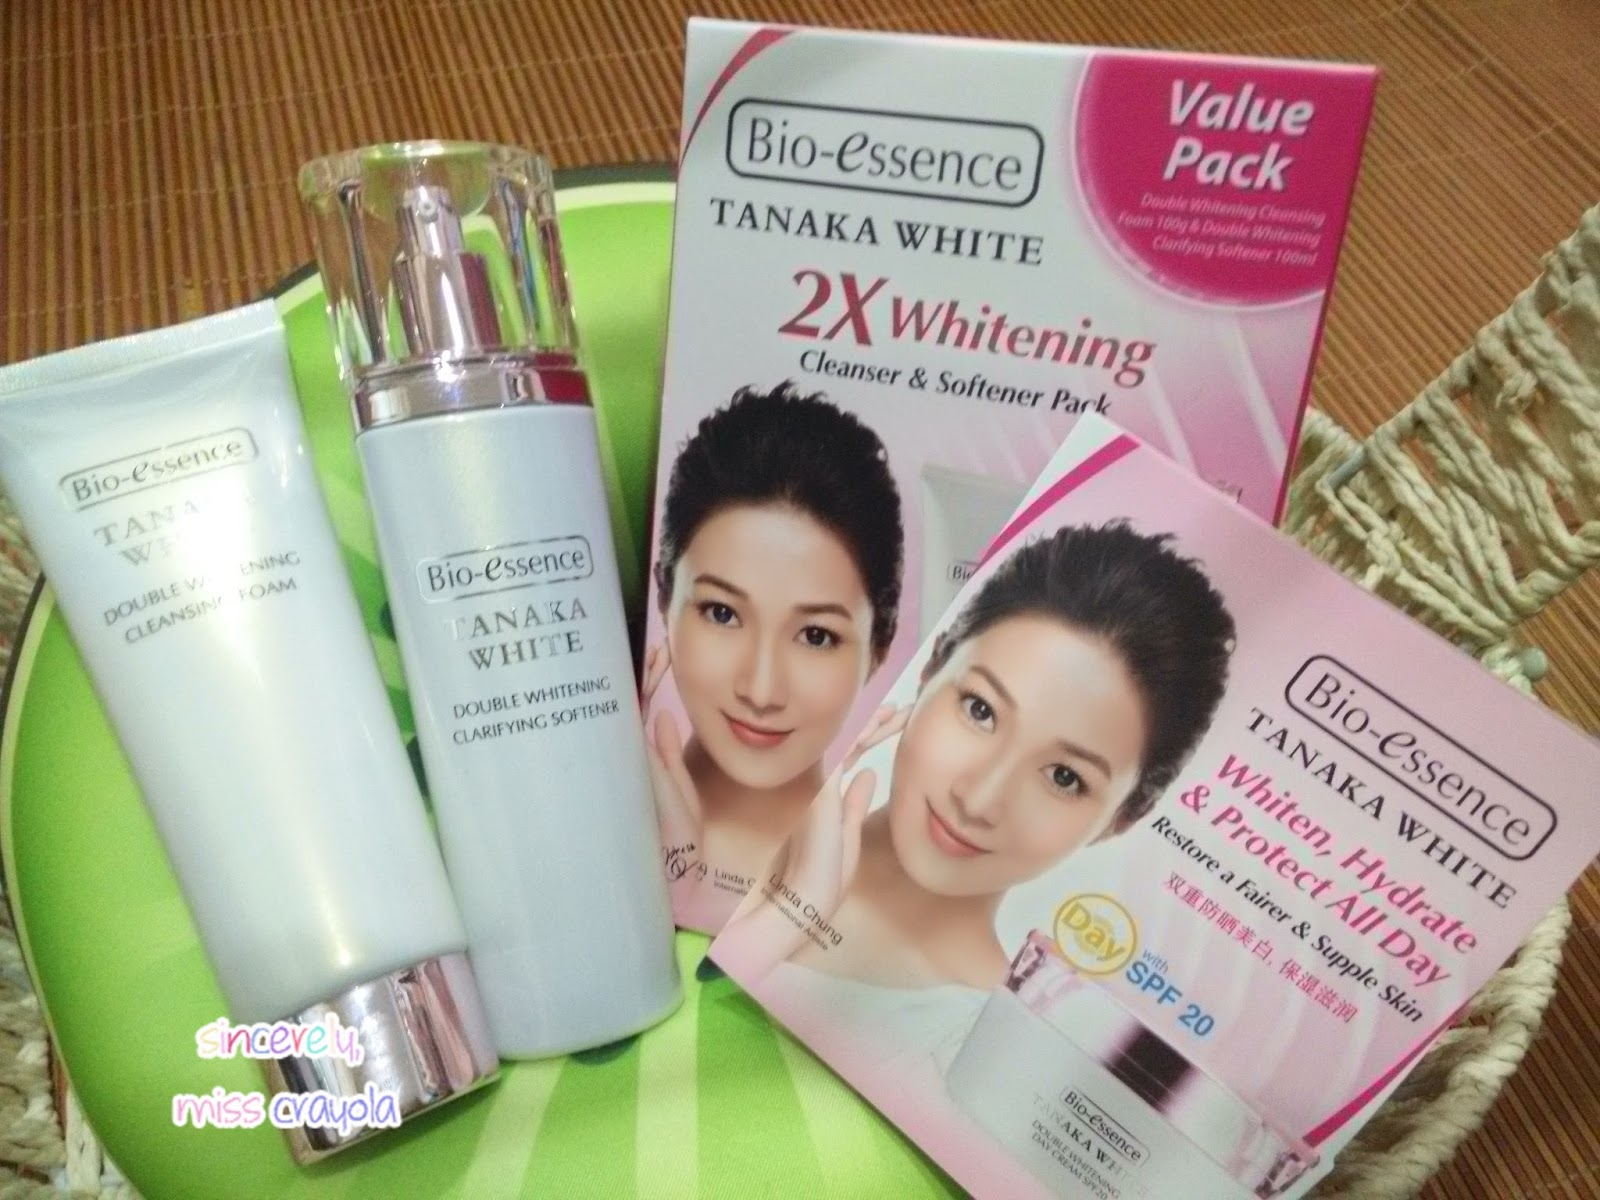 Bio Essence Tanaka White Cleanser & Softener Value Pack